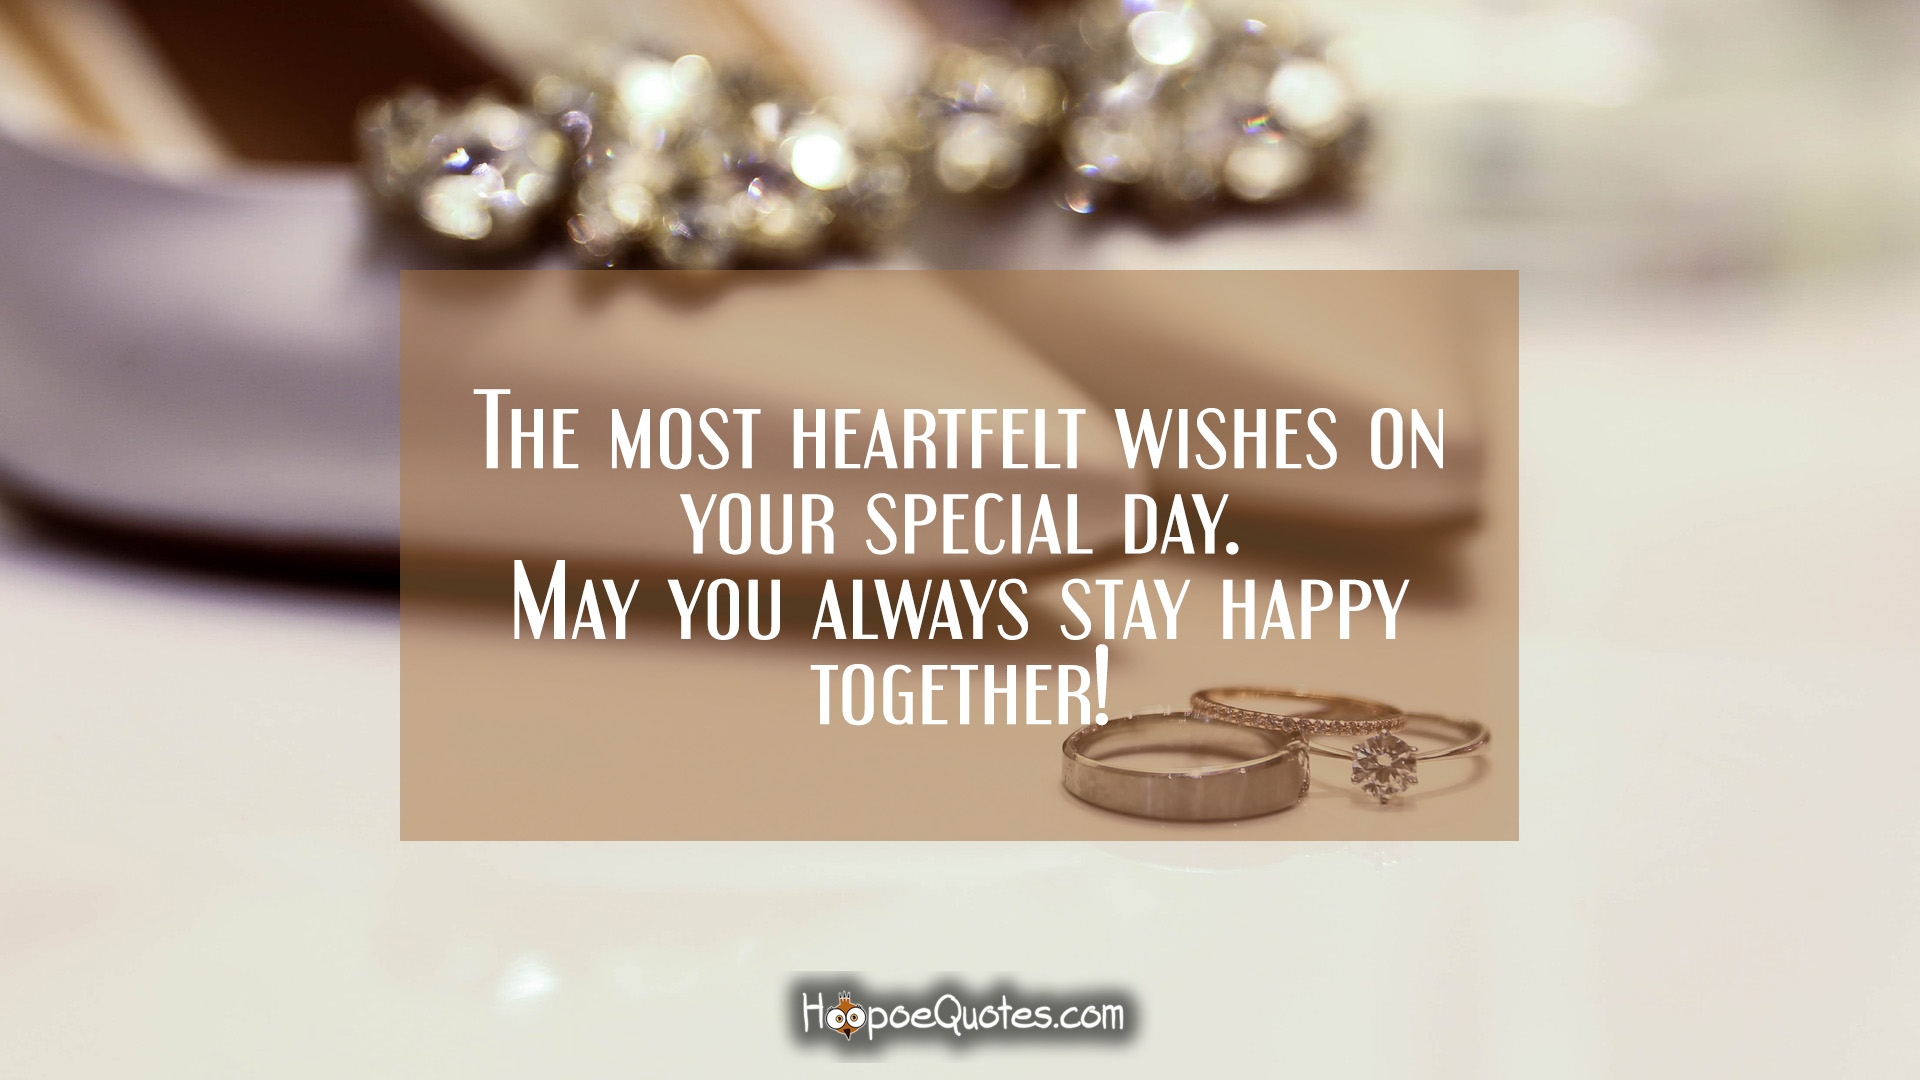 The Most Heartfelt Wishes On Your Special Day May You Always Stay